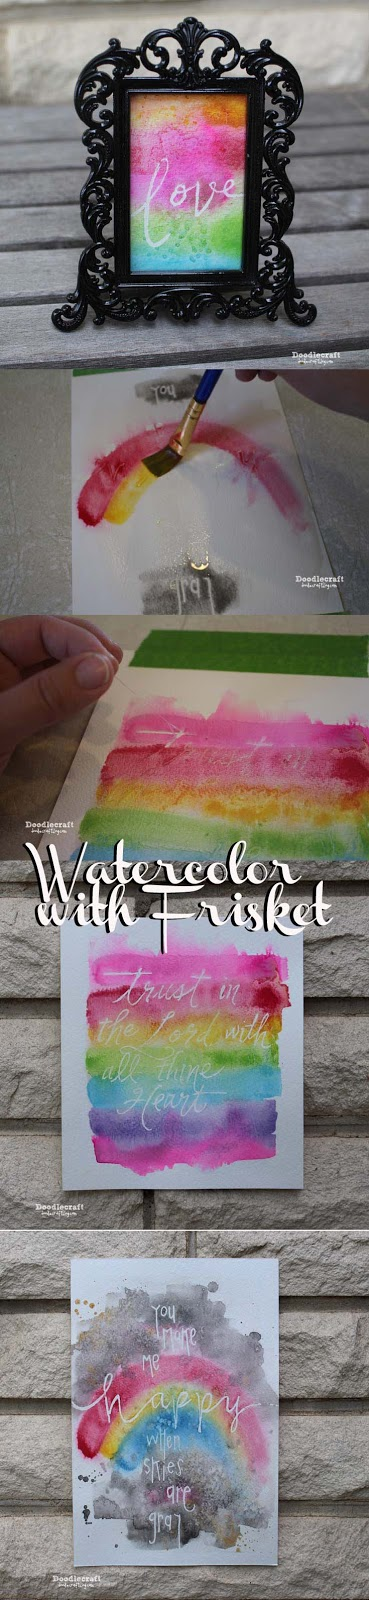 http://www.doodlecraftblog.com/2015/06/watercolor-word-art-with-frisket.html